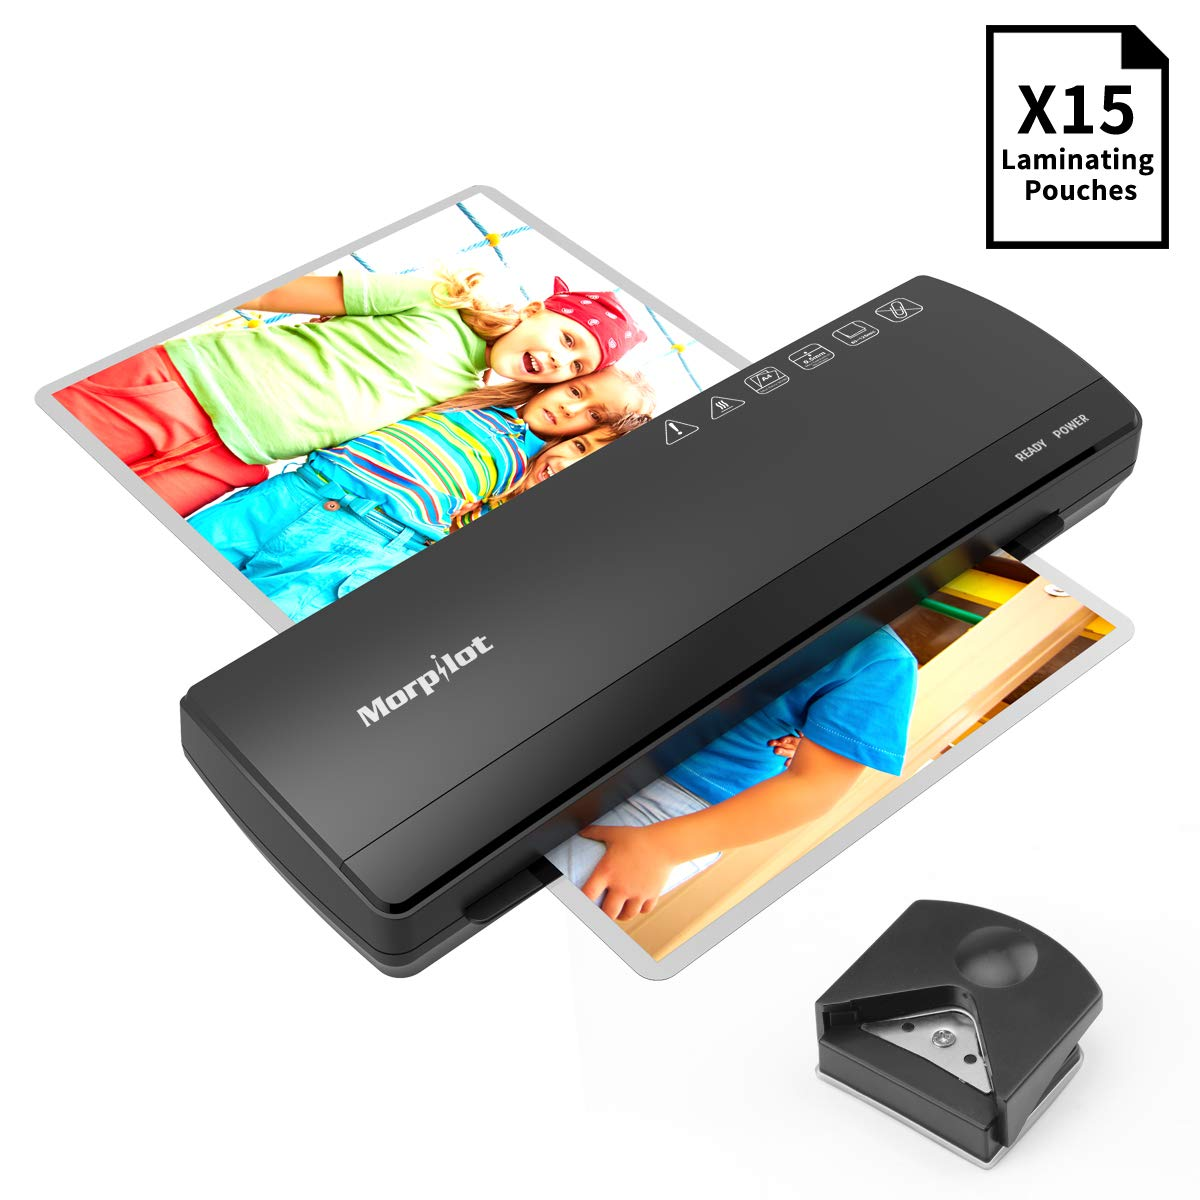 Great Laminator at an even better price